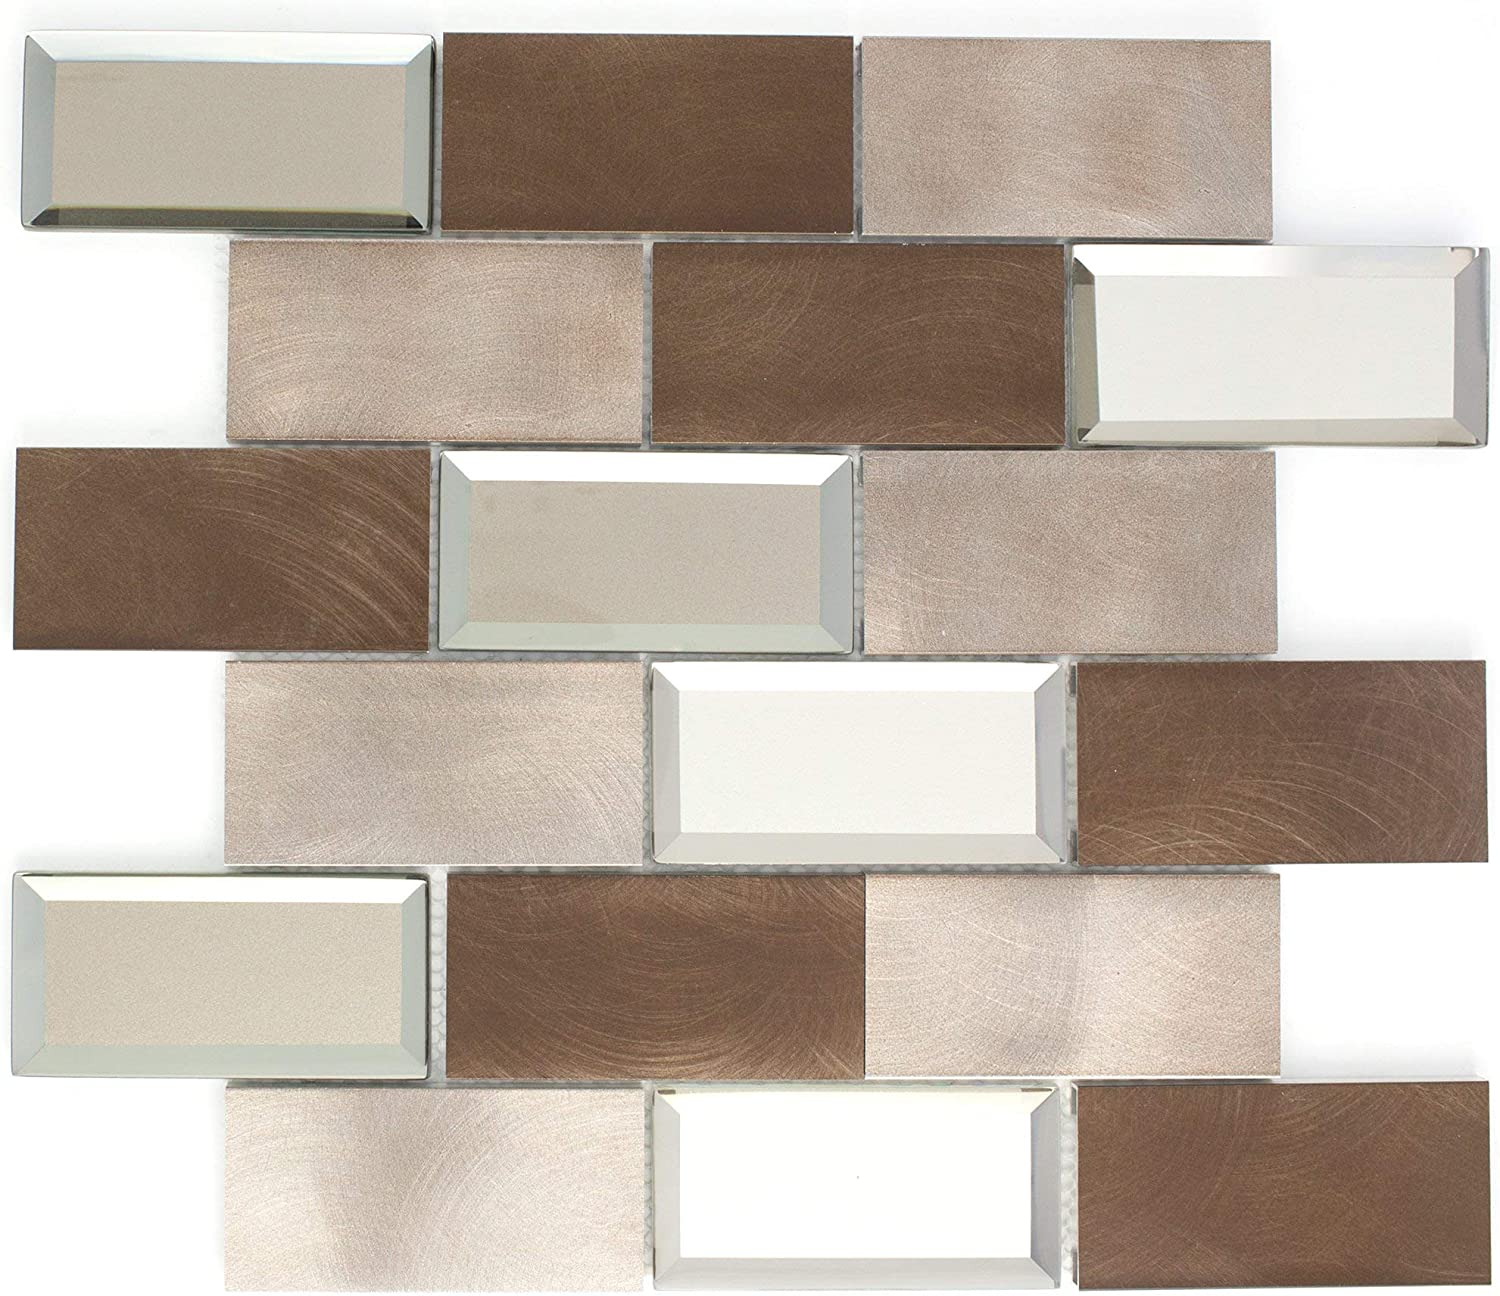 - Amazon.com: TAFMG-01 2x4 Subway Tile Bronze Almiunum Mix Mirror